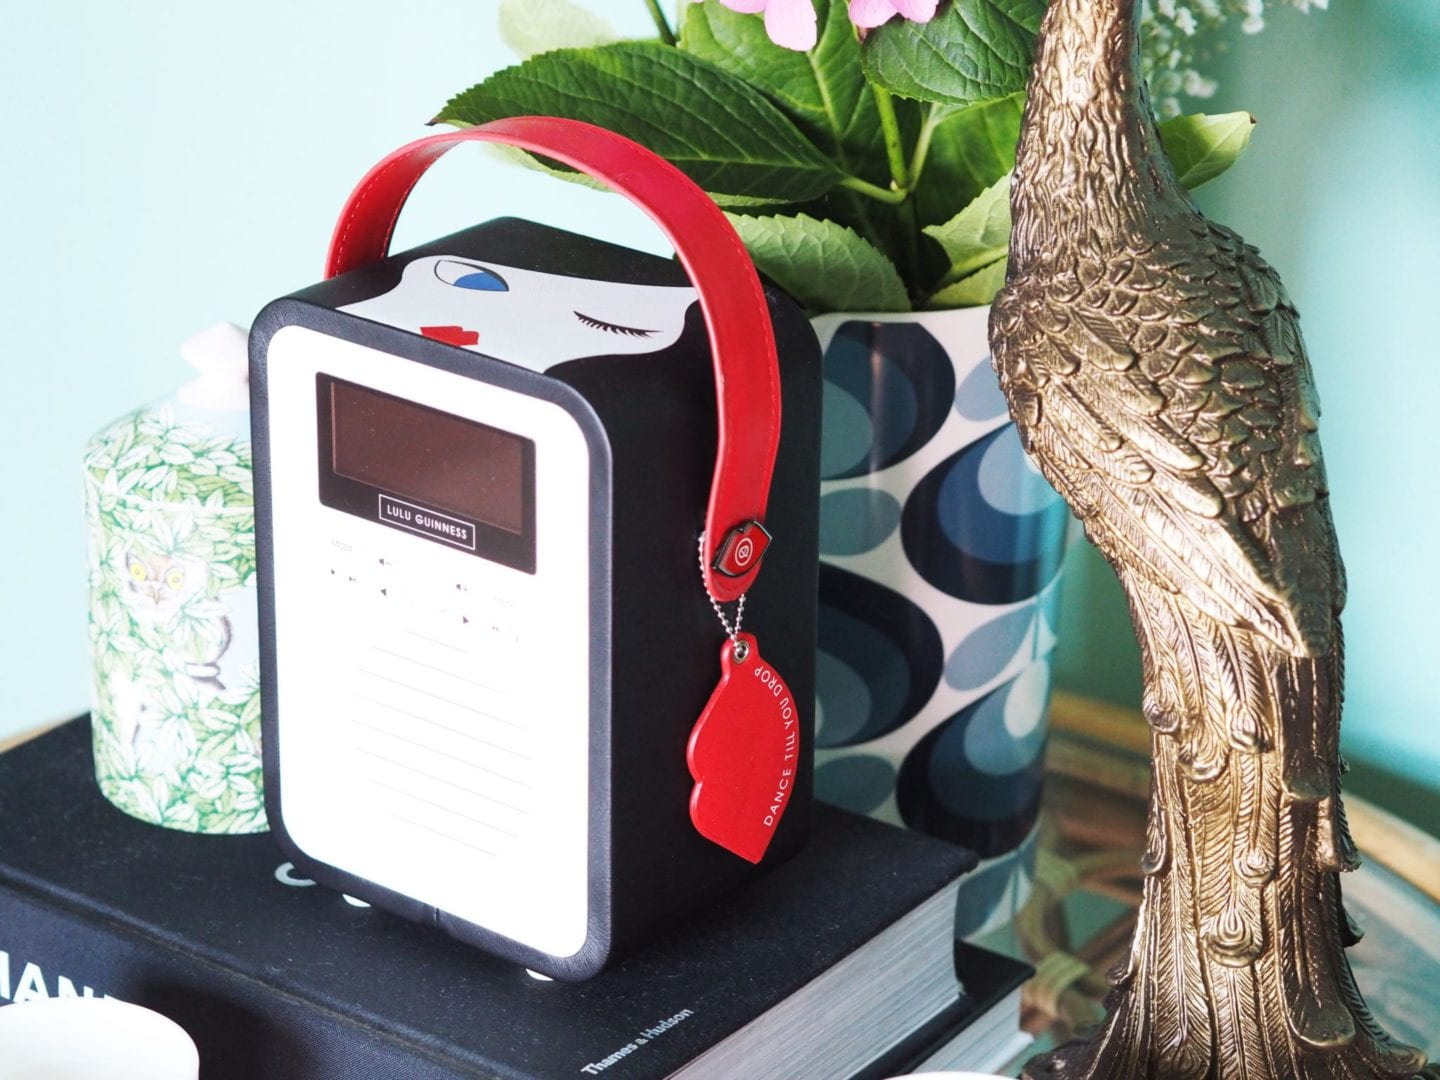 my vq radio lulu guinness face mini retro podcast speaker